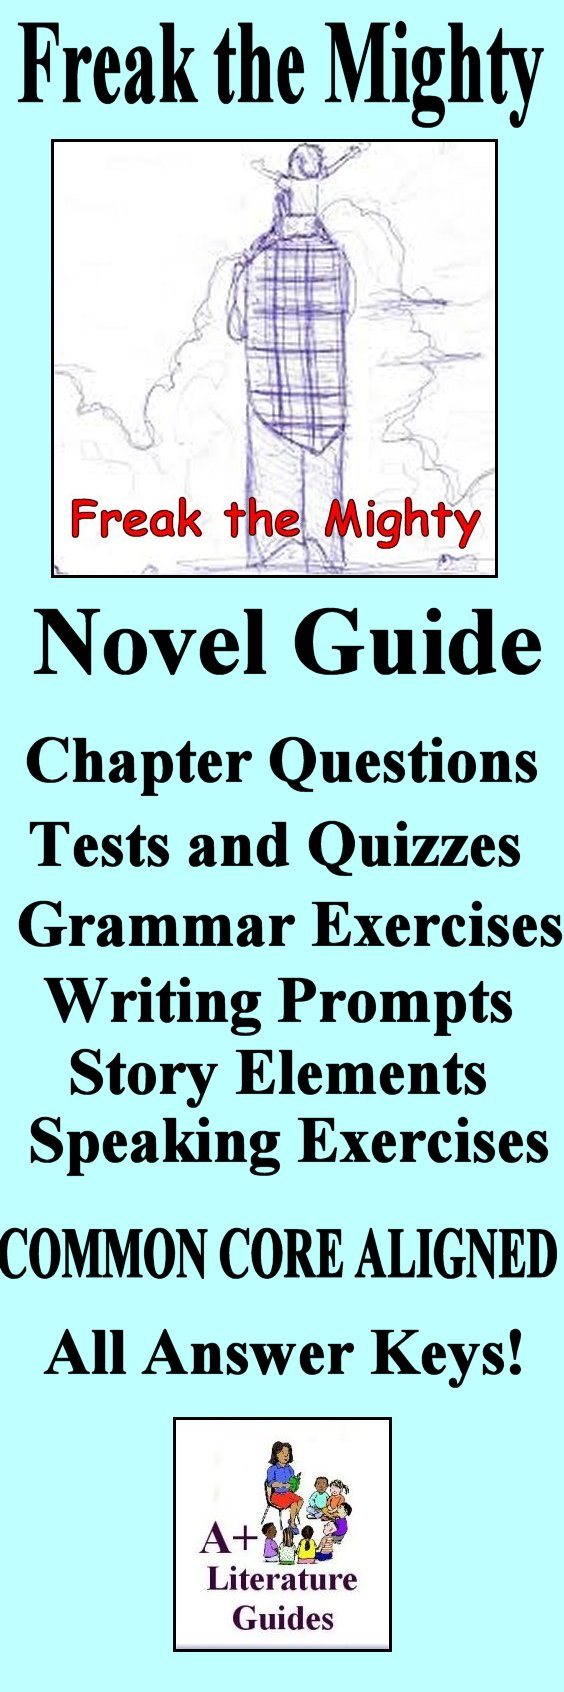 This is a 125 page complete literature guide for the novel, Freak the Mighty.  It has everything a teacher needs to teach and assess this wonderful novel  ...